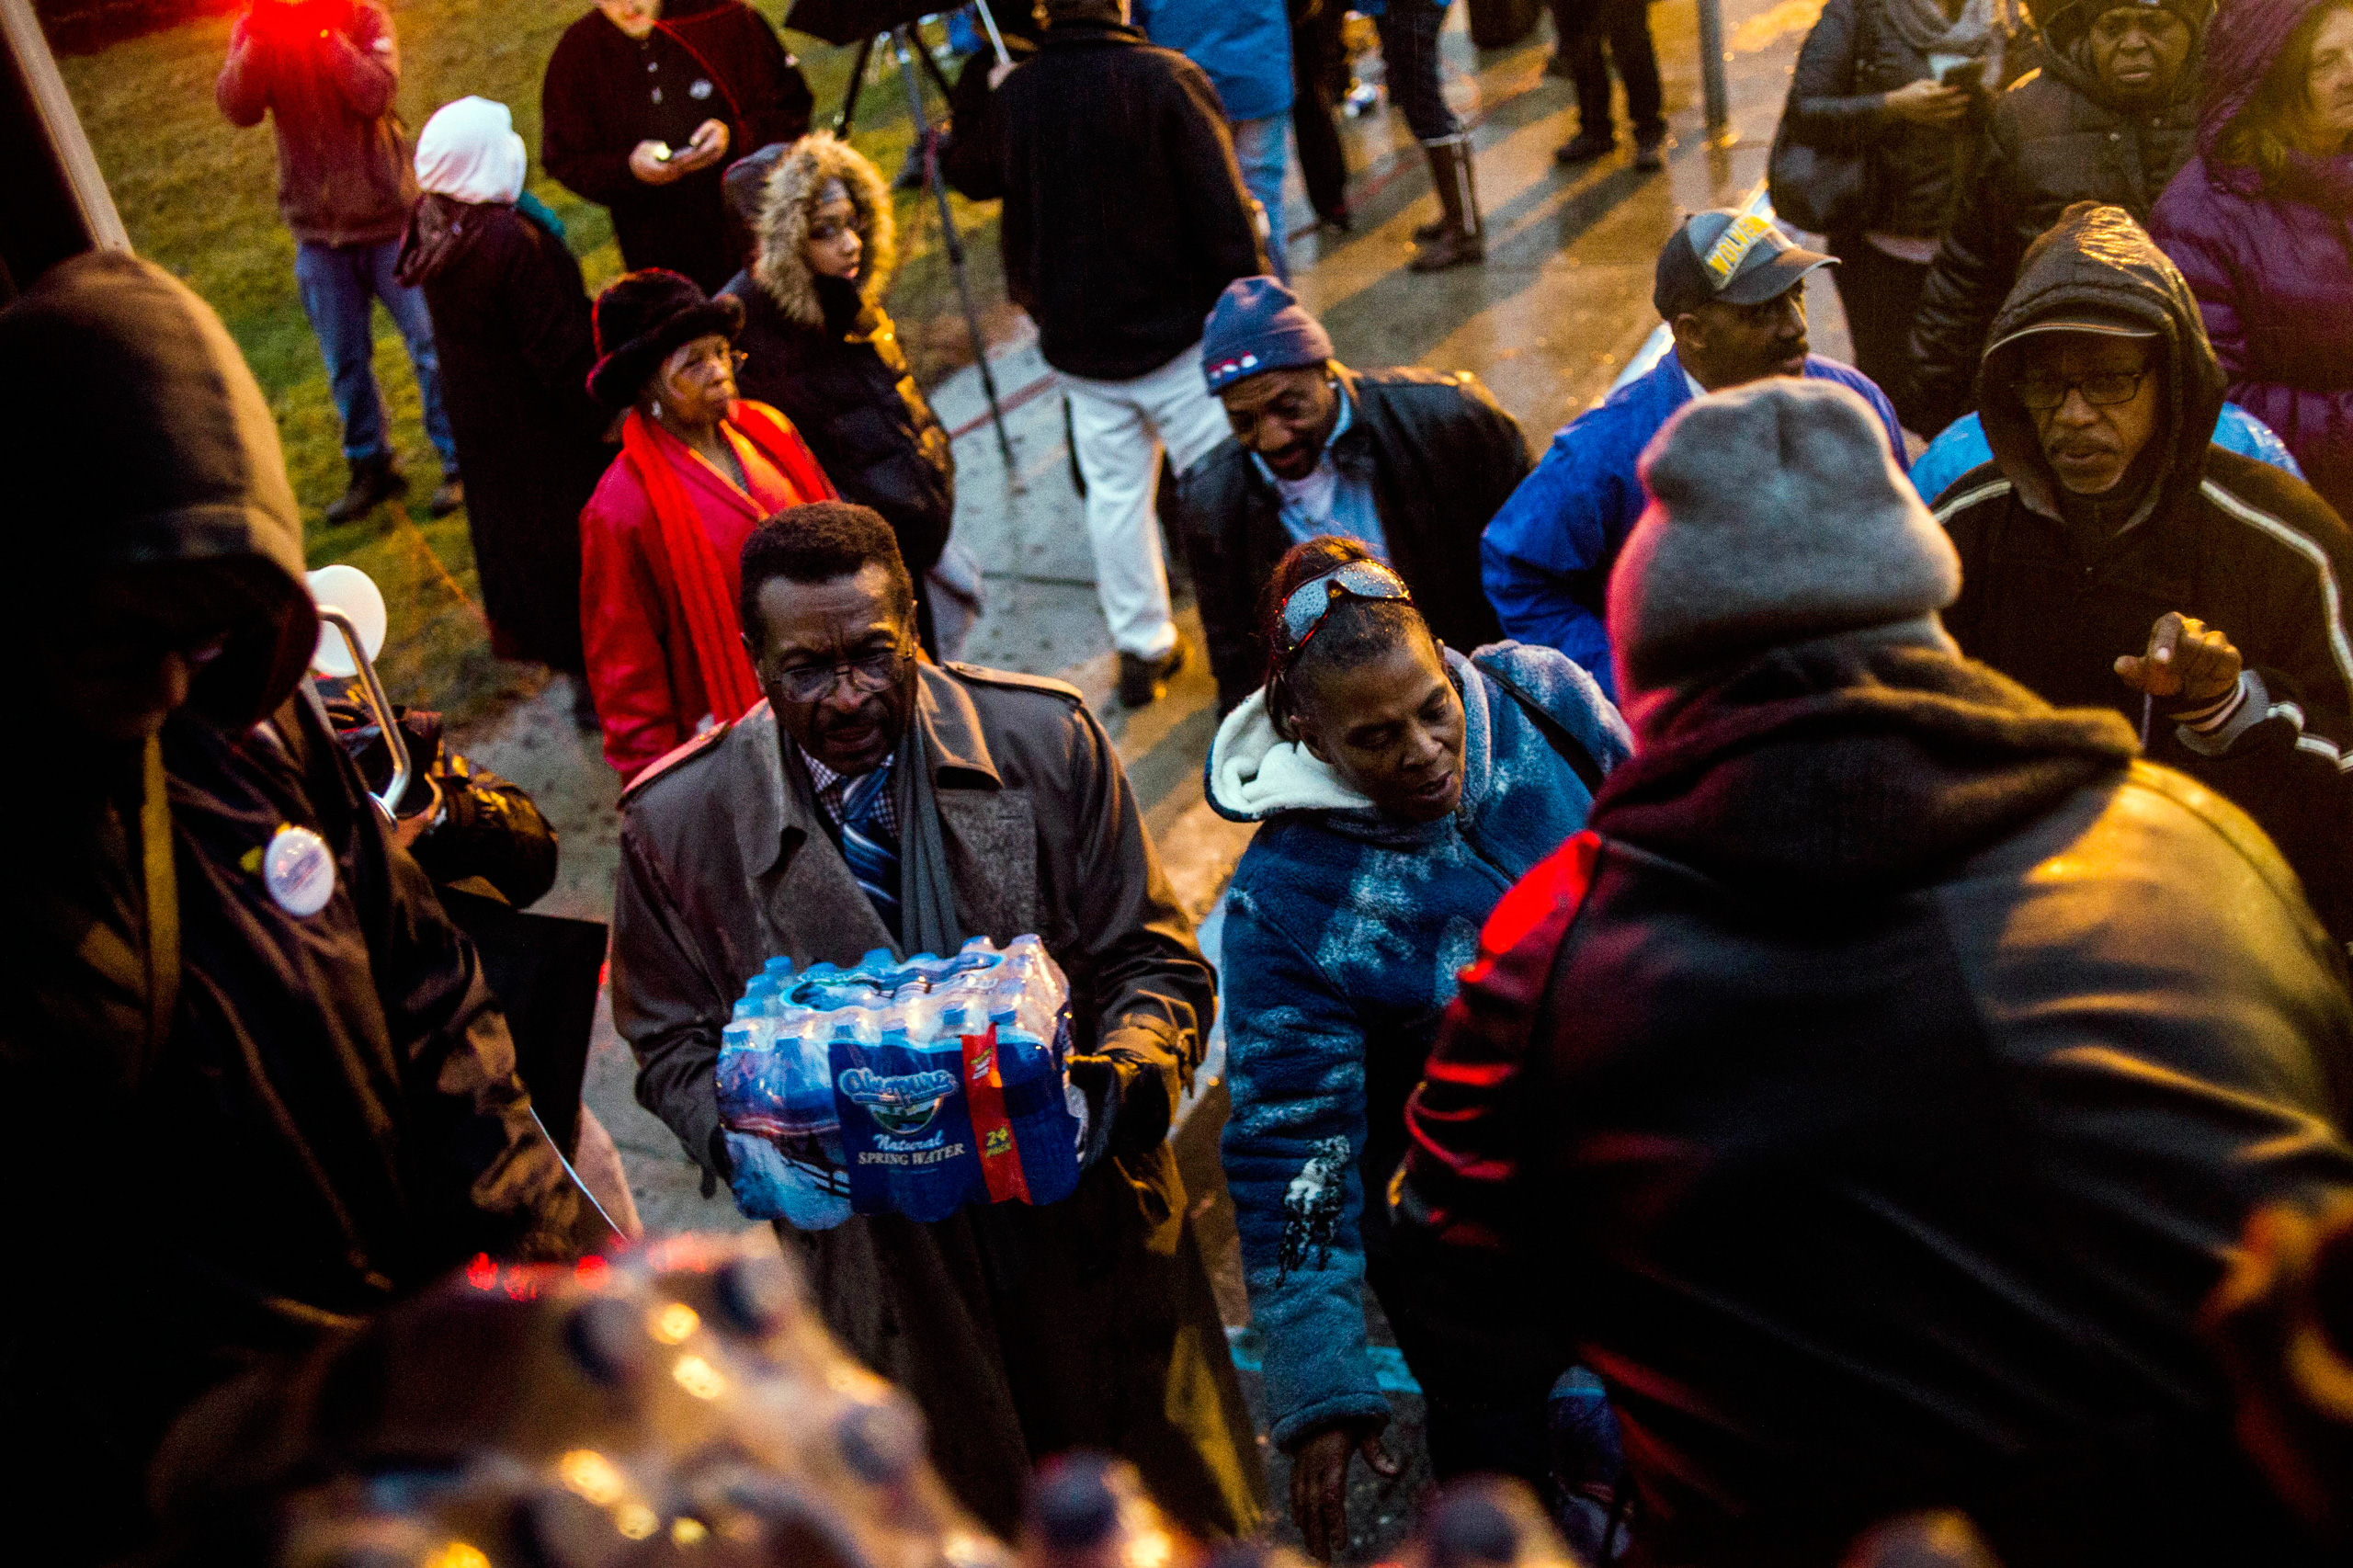 Flint residents line up for free bottled water as activists protest outside of City Hall to protest Michigan Gov. Rick Snyder's handling of the water crisis in Flint, Mich., on Jan. 8, 2016.